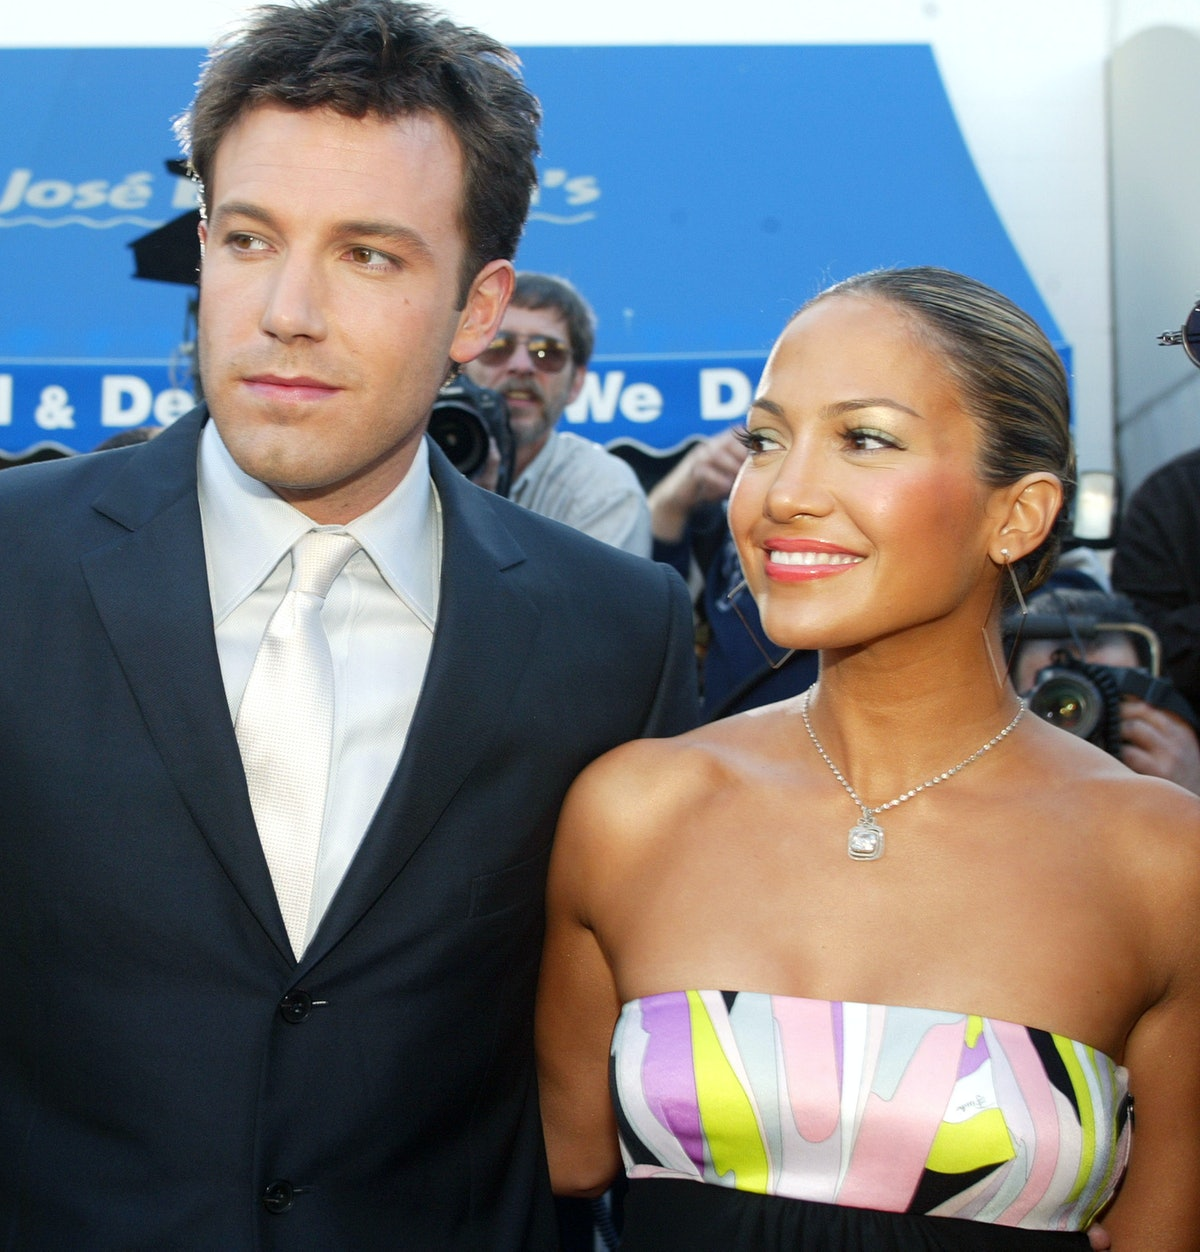 Take a trip down memory lane to see Jennifer Lopez and Ben Affleck's best couple outfits, from her p...